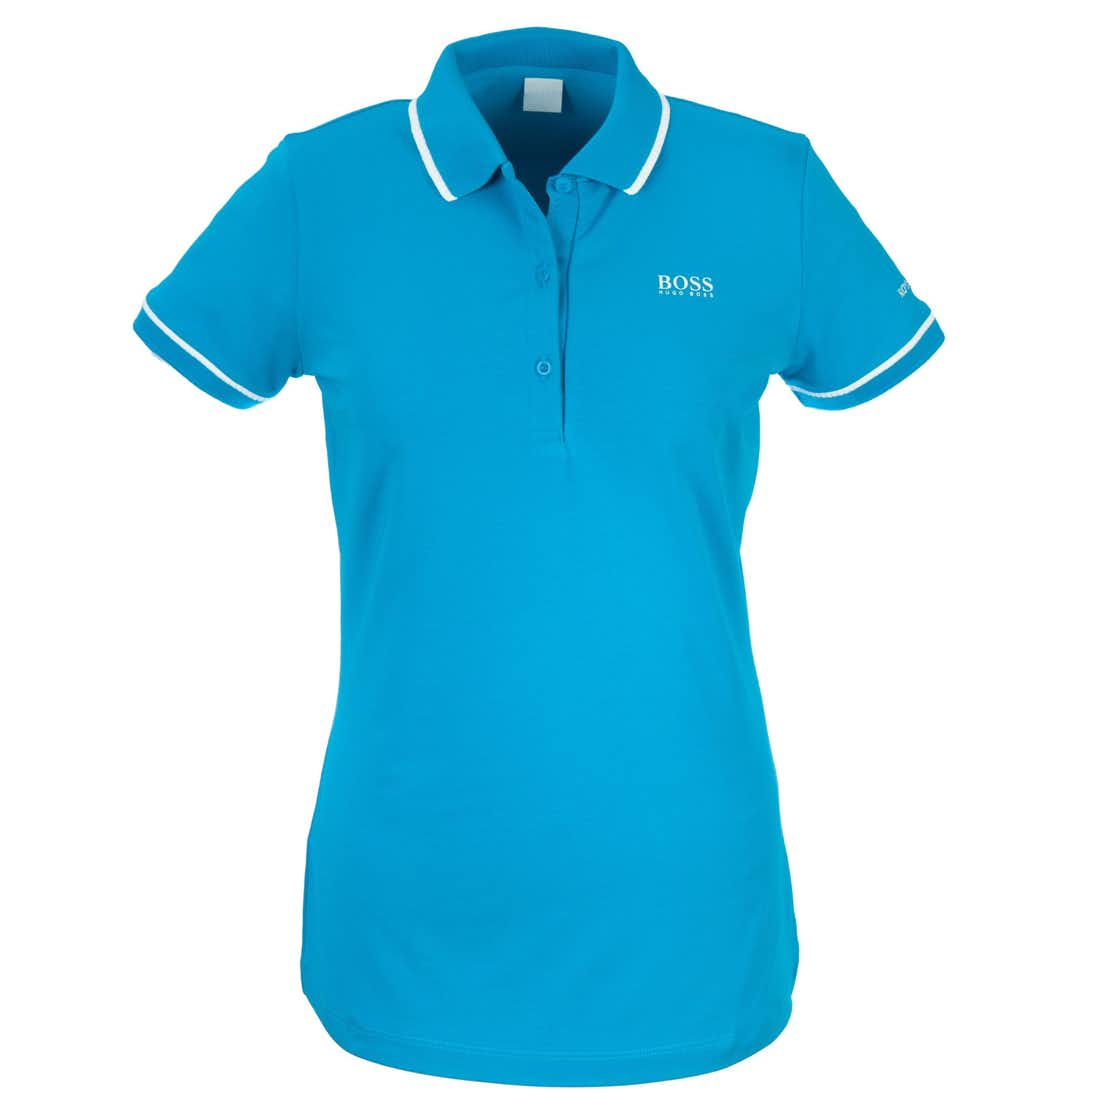 148th Royal Portrush BOSS Plain Polo - Blue